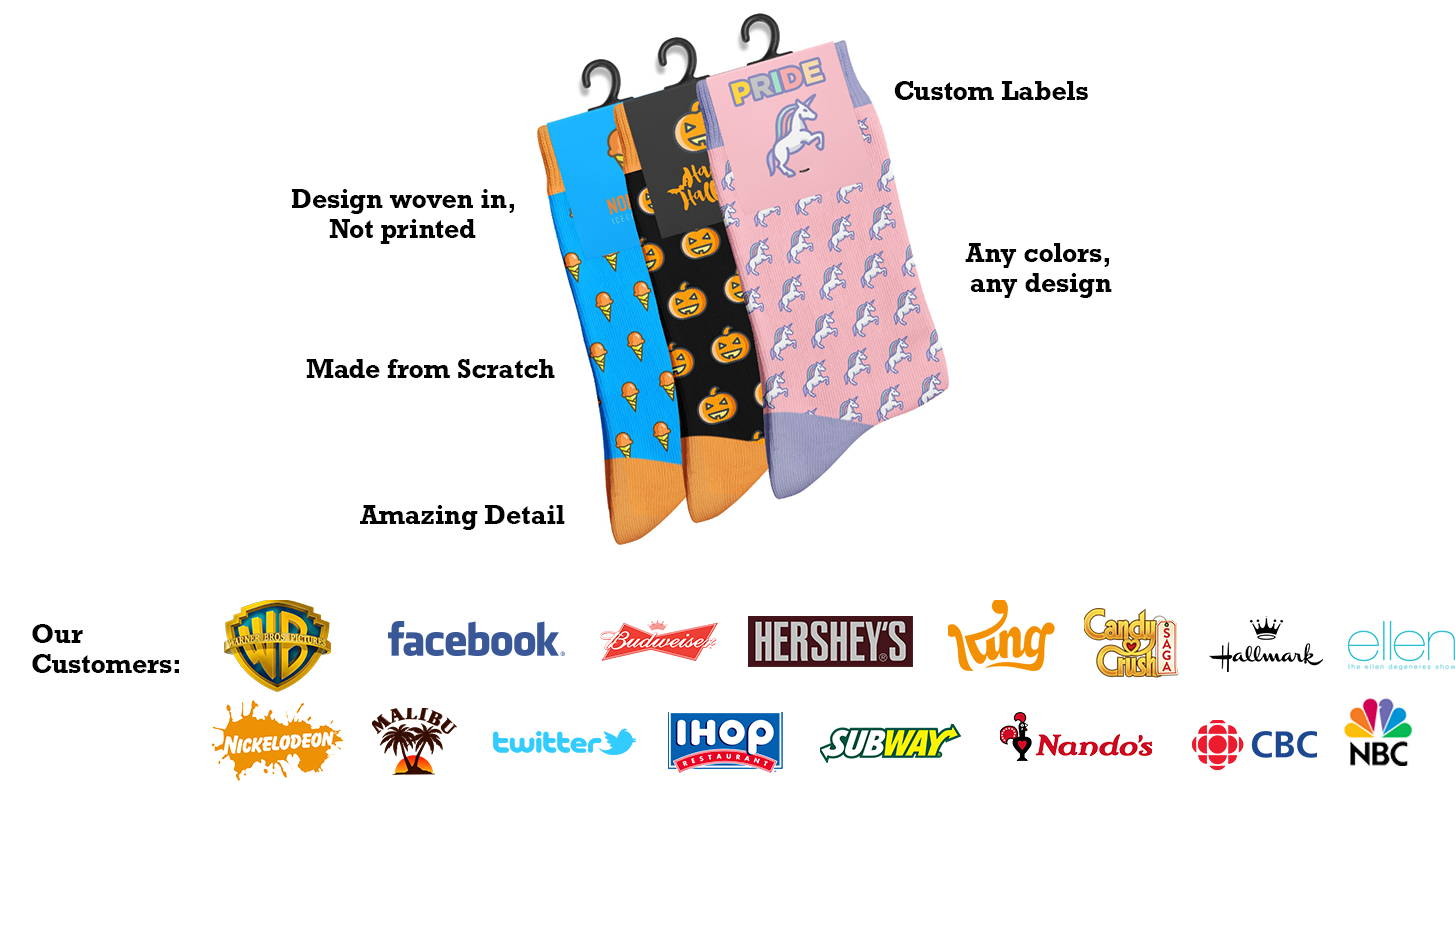 An image of some custom socks